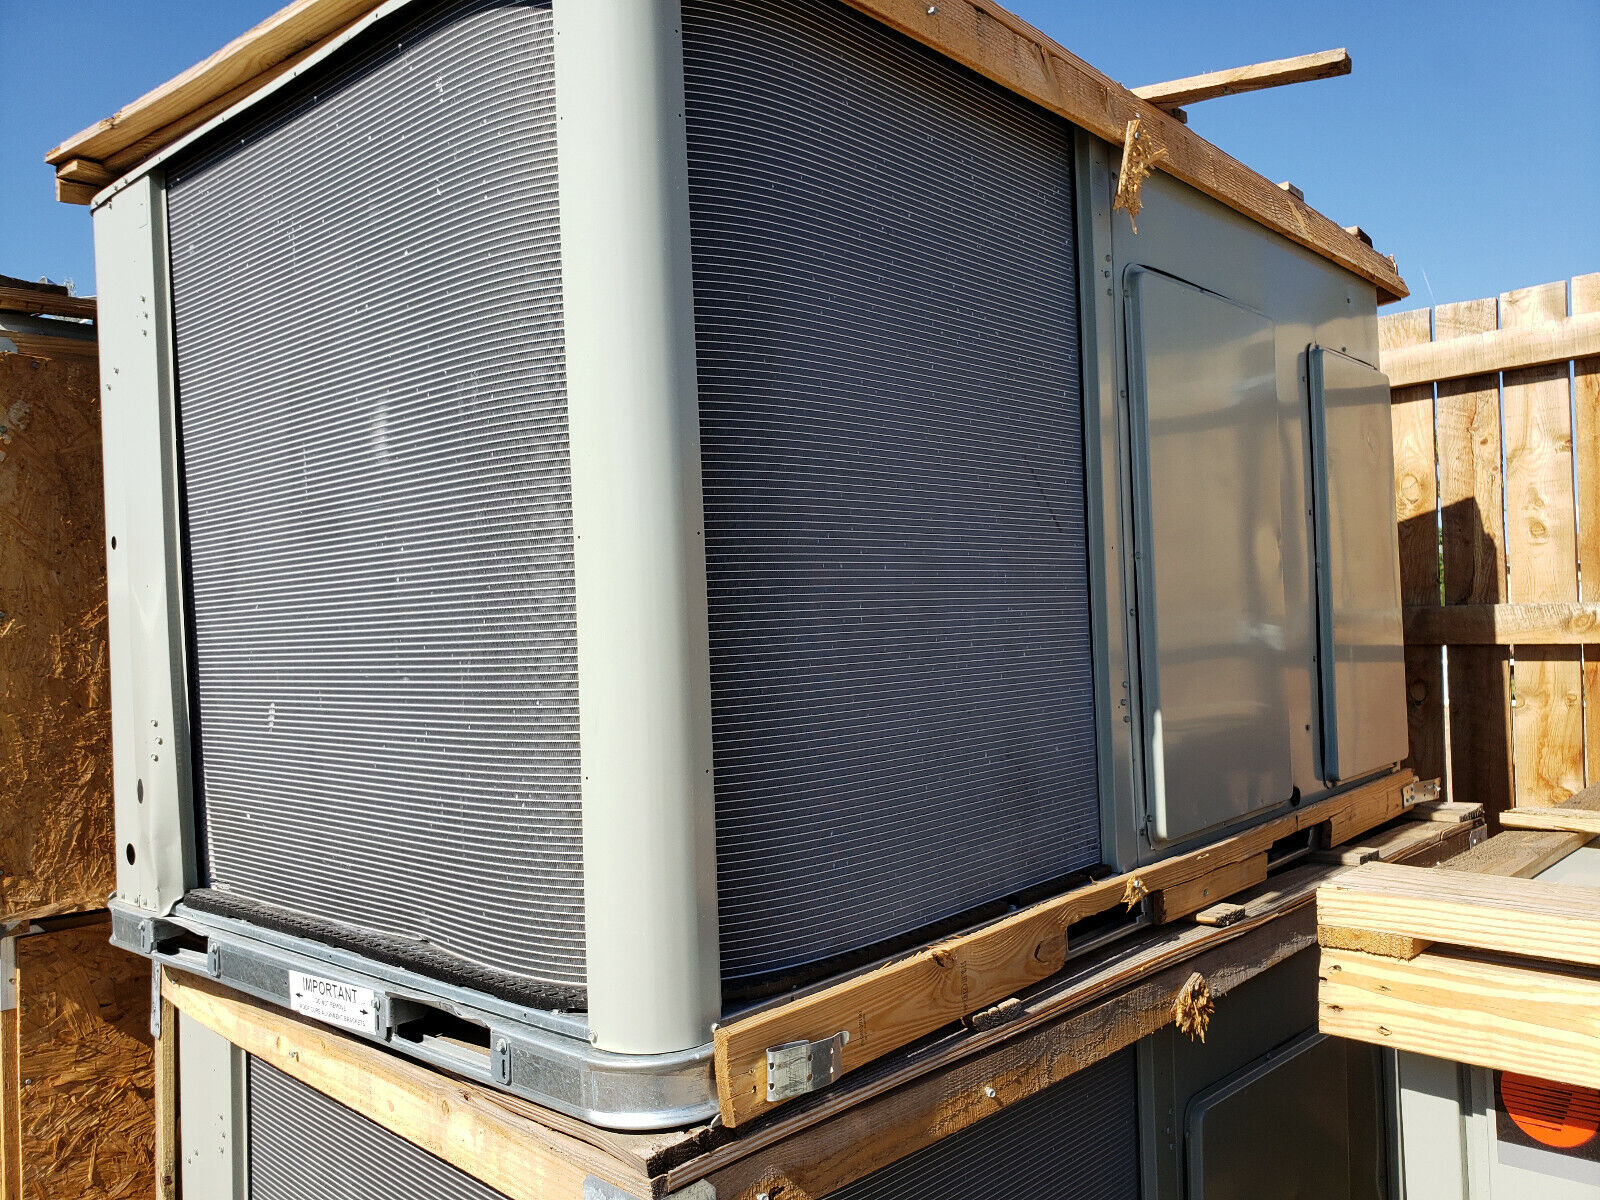 Trane 10 Ton CONVERTIBLE Combi Unit Forced Air Furnace With